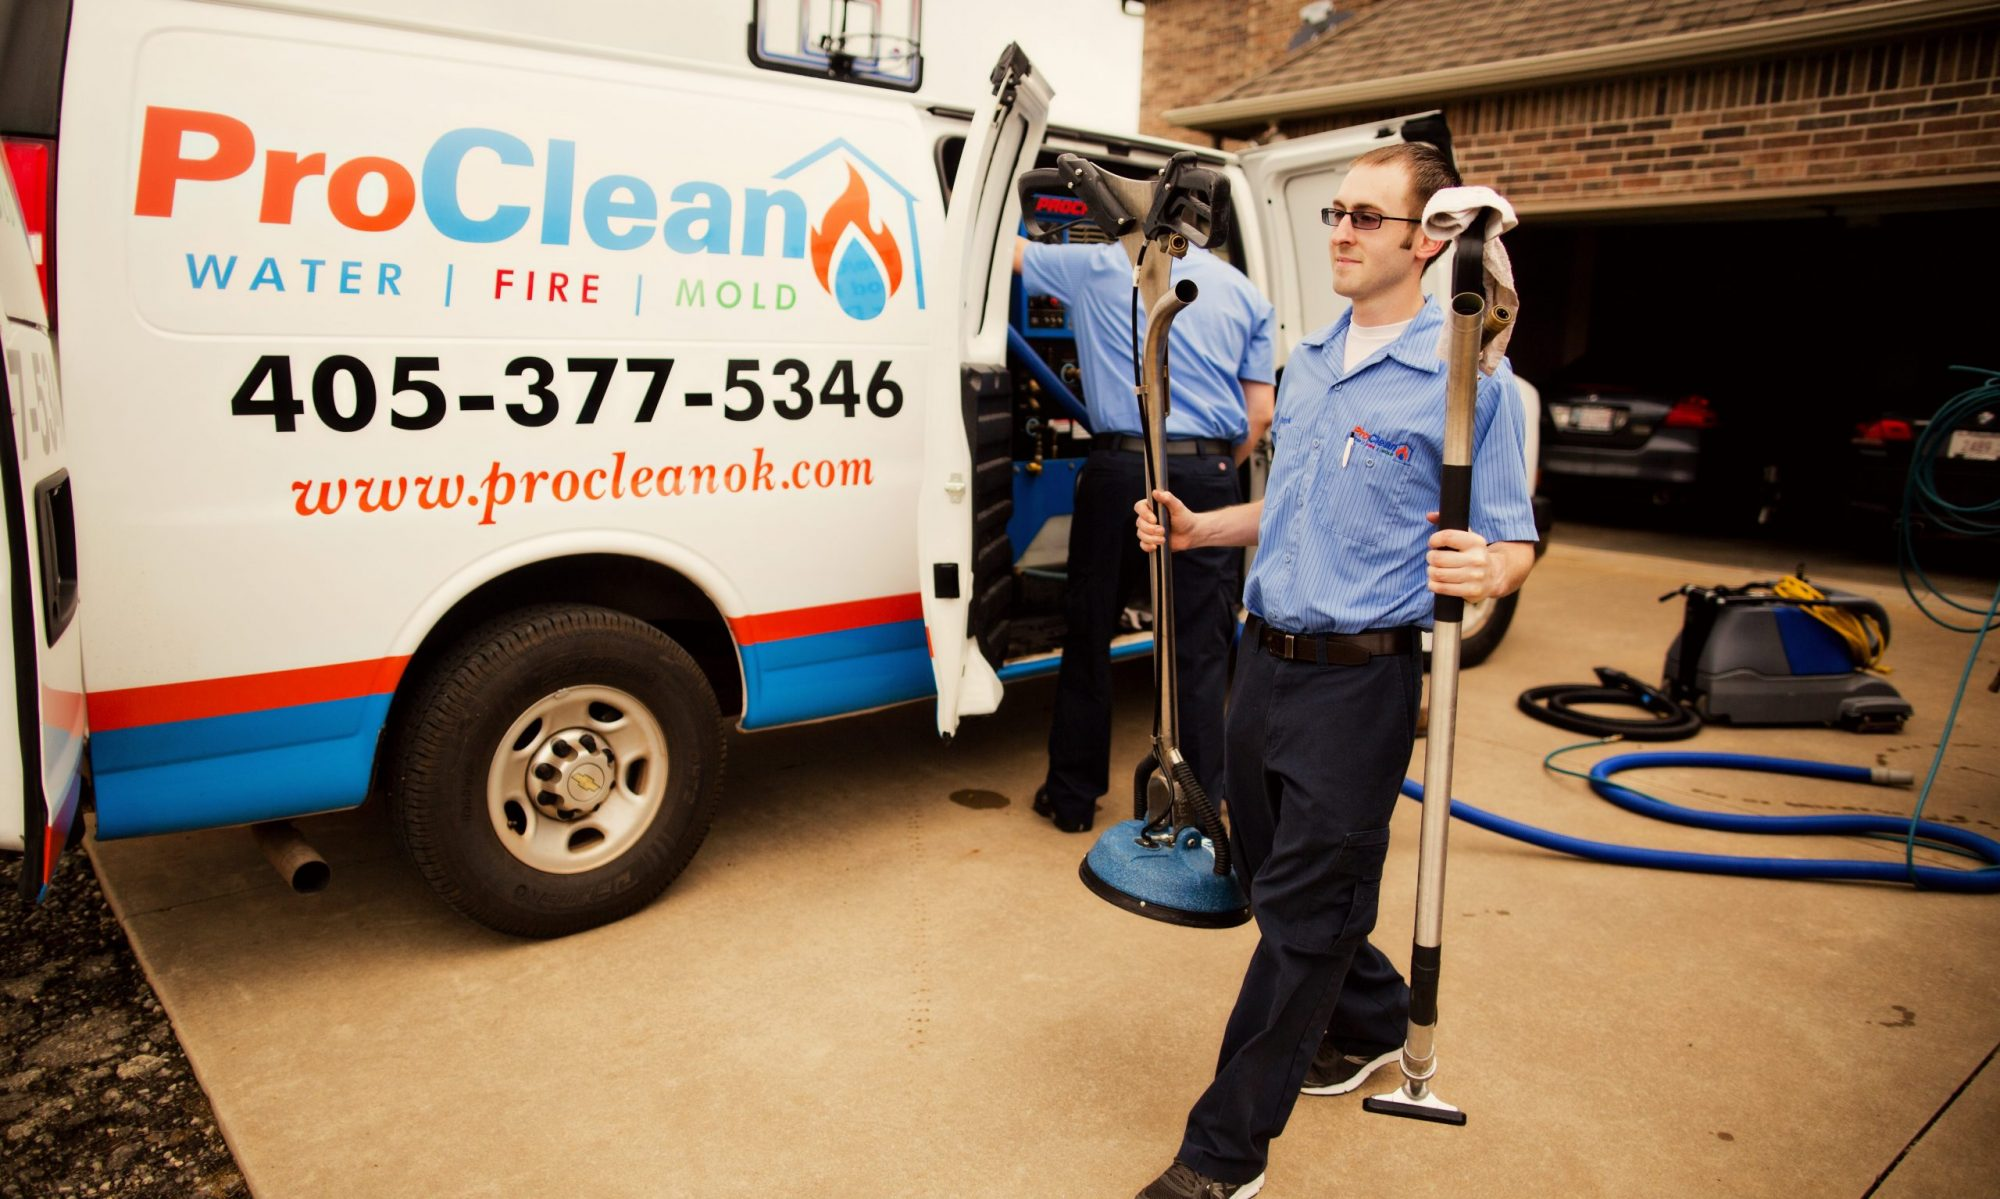 ProClean Property Maintenance and Restoration